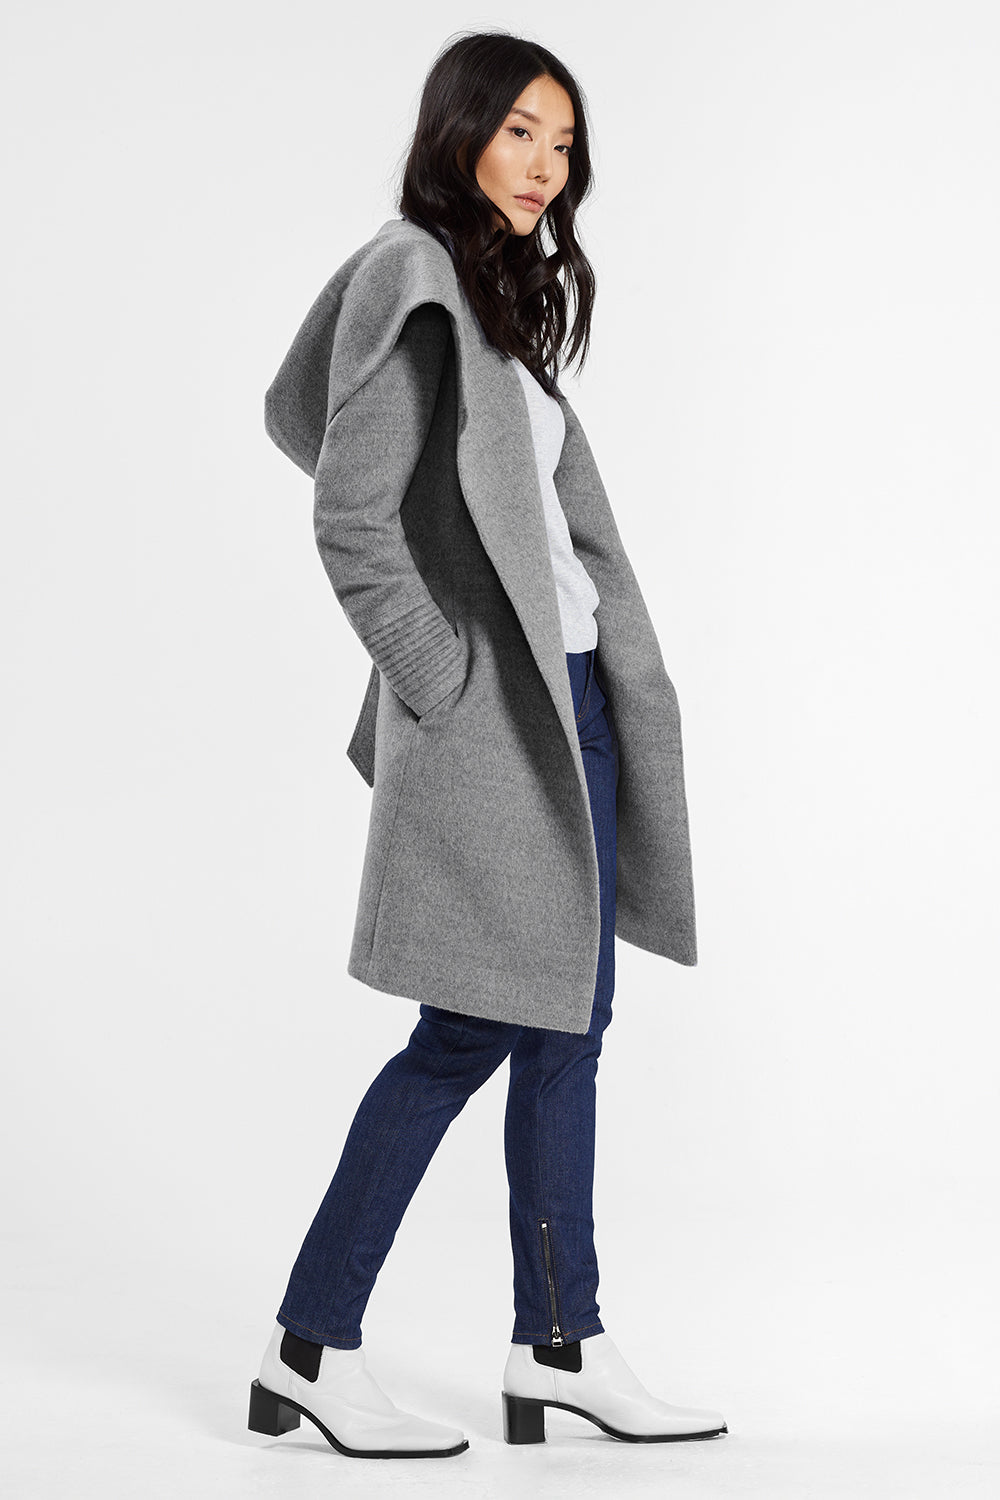 Sentaler Mid Length Hooded Wrap Coat featured in Baby Alpaca and available in Shale Grey. Seen in action.